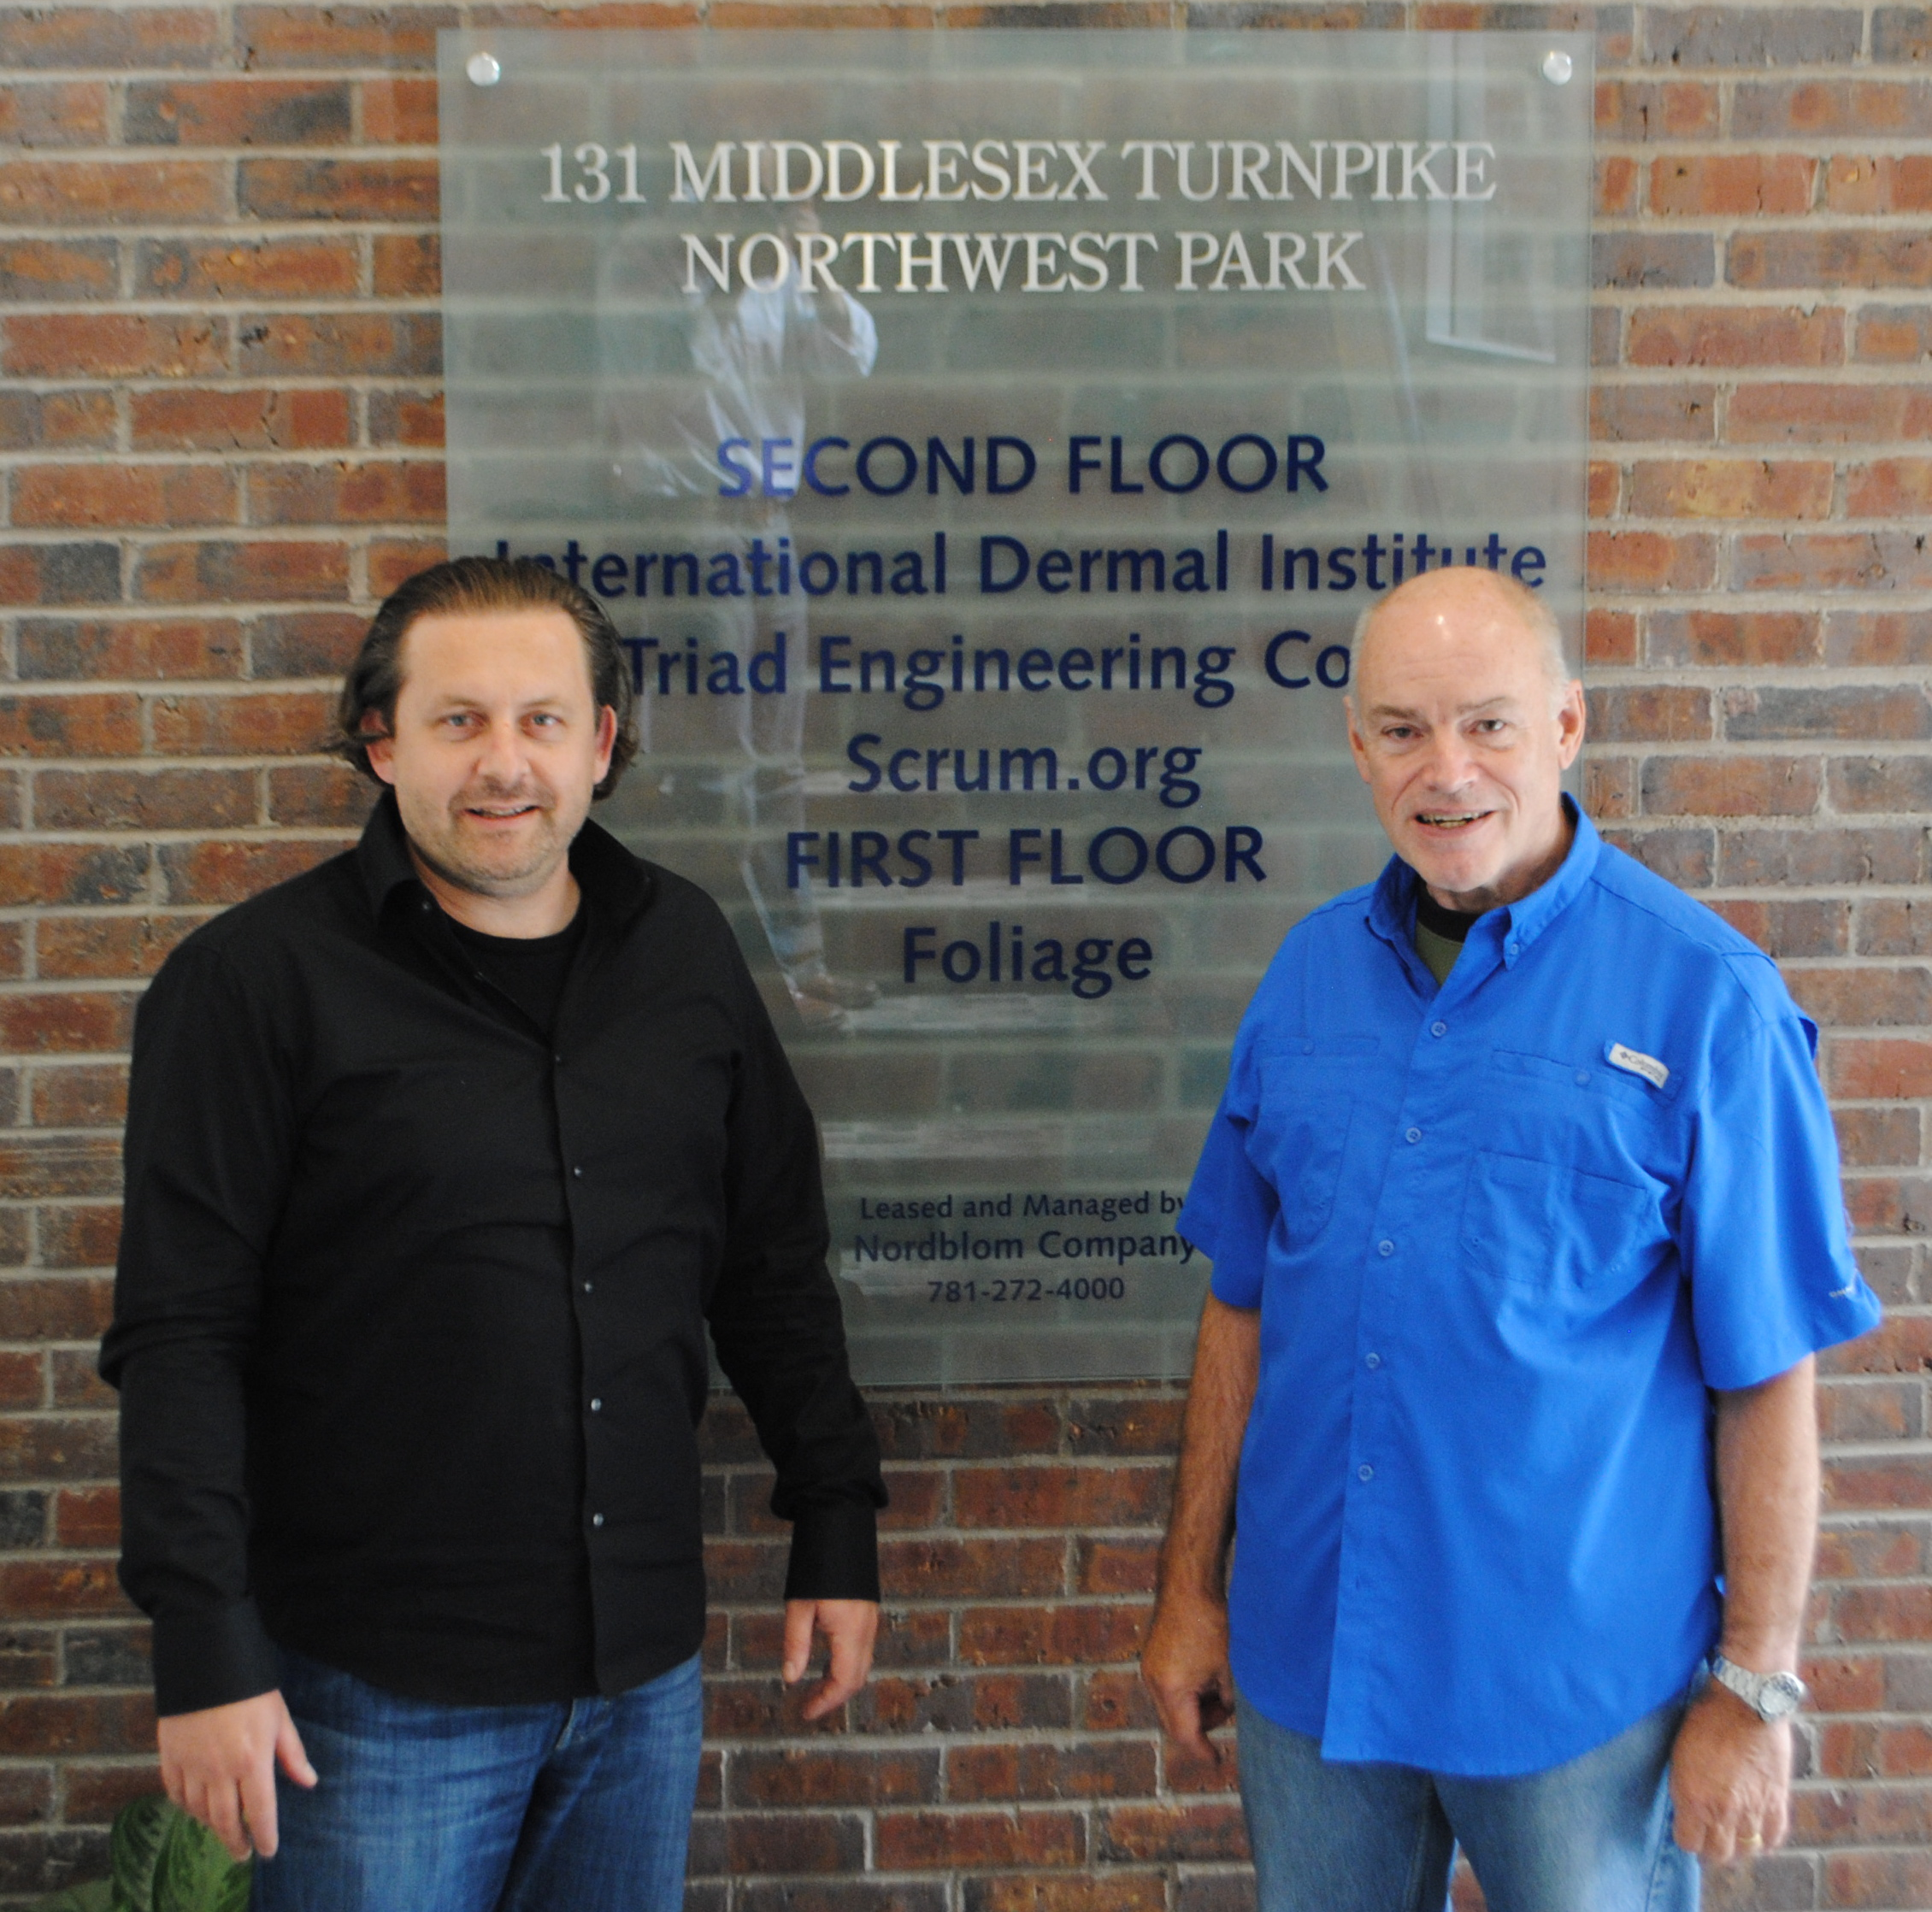 Joe Krebs and Ken Schwaber at the Birthplace of Scrum